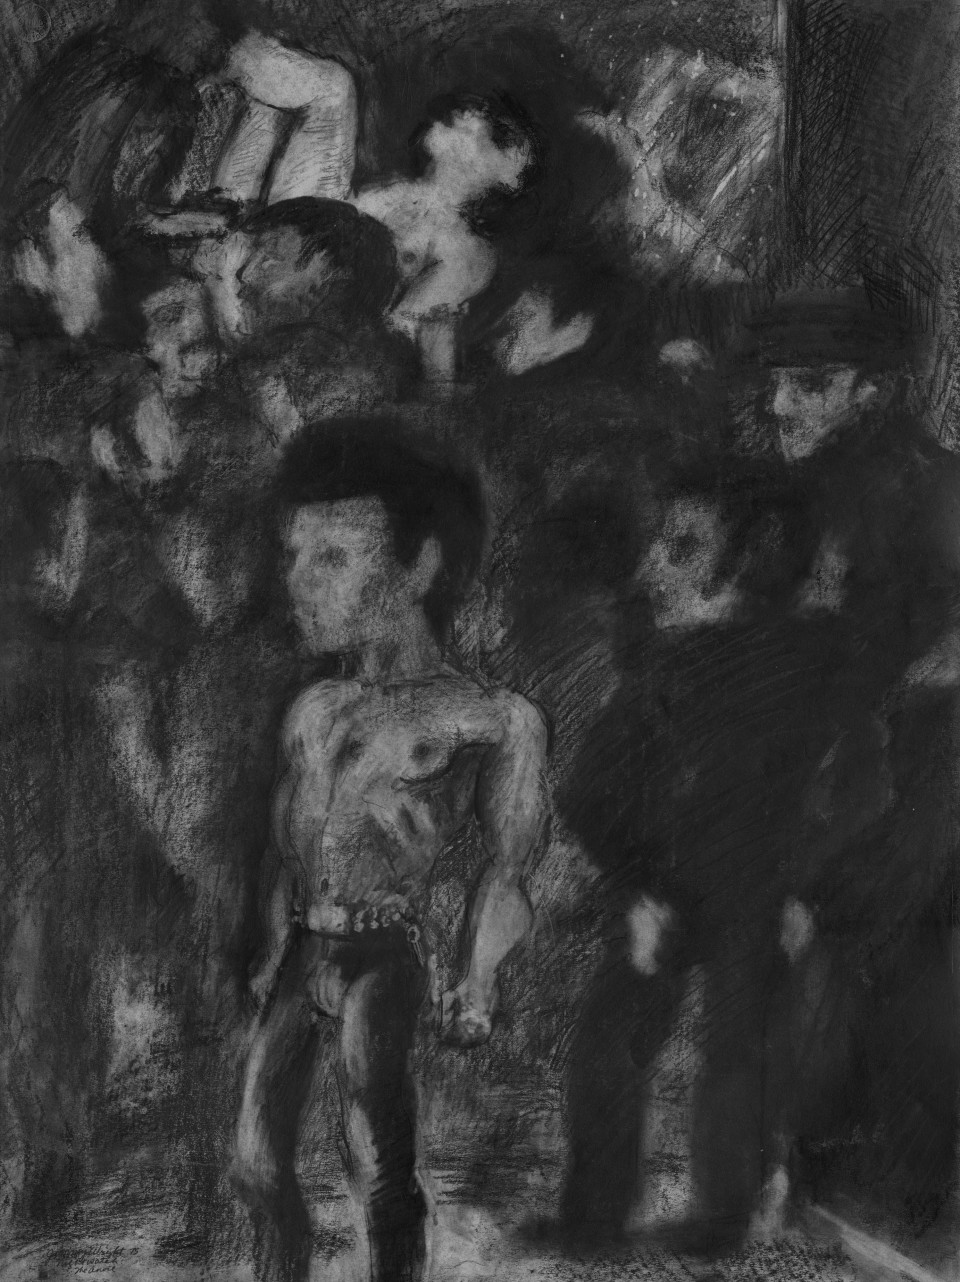 Image: Jimmy Wright  Nightwatch: The Anvil, 1975  graphite on paper  30 x 22 inches (76.2 x 55.9 cm)